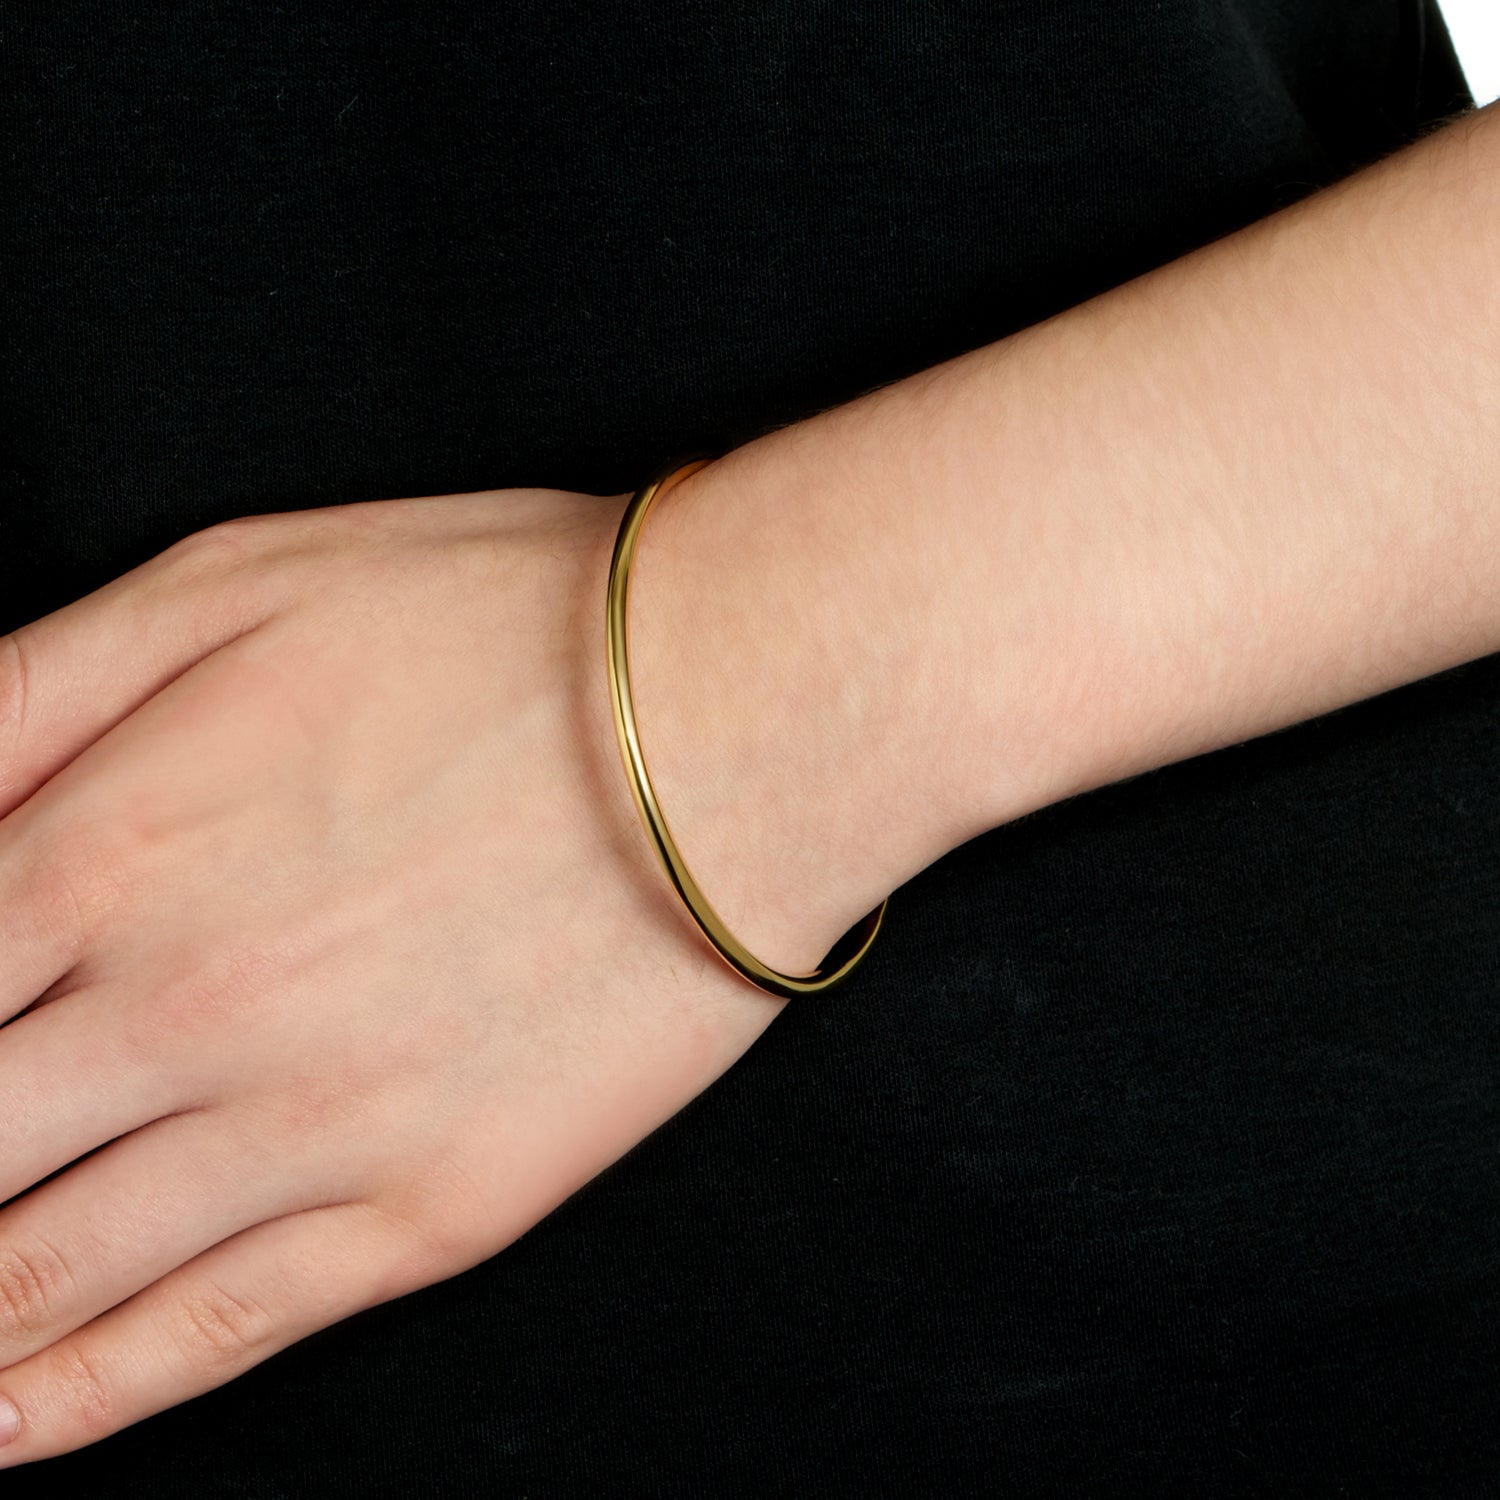 Round Bangle - Polished 18k Gold